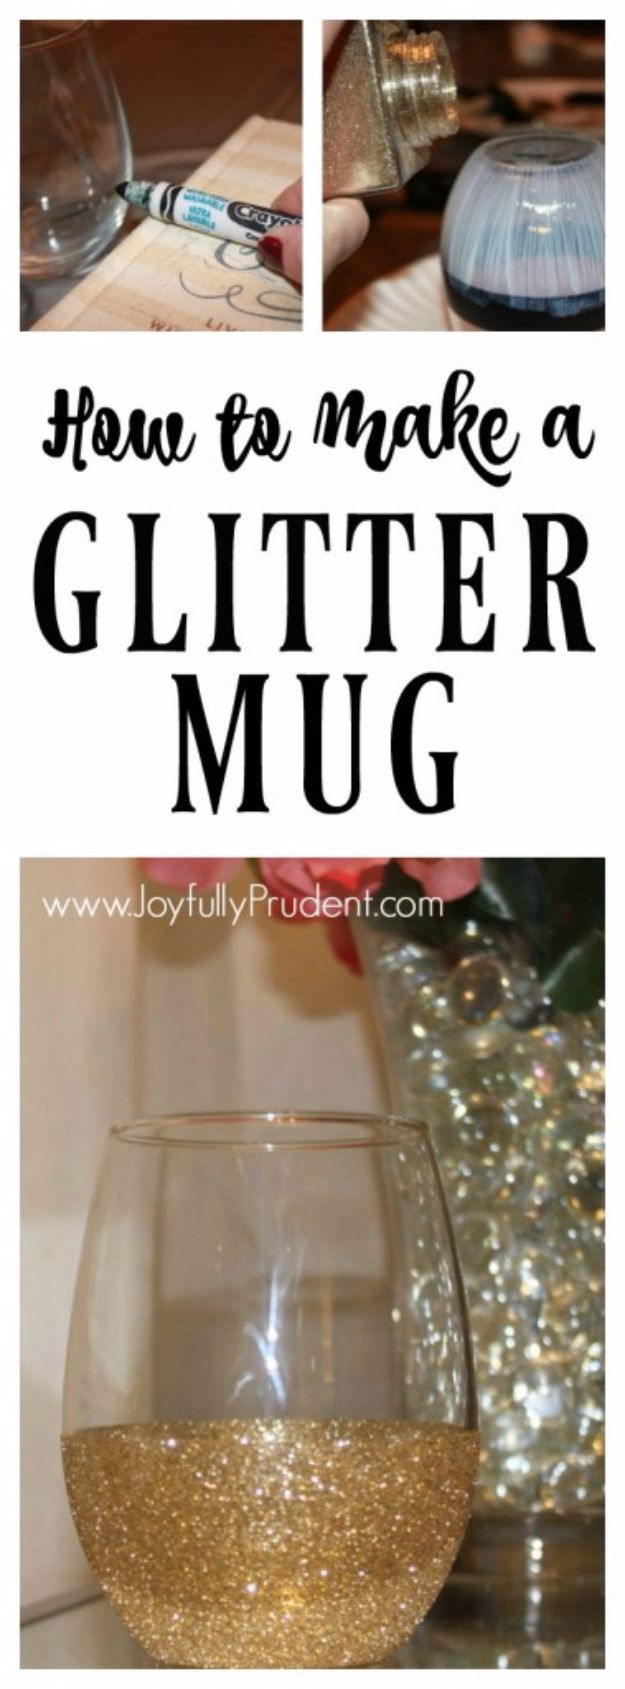 DIY Ideas WIth Glitter - Glitter Dipped Mug - Easy Crafts and Projects for Decoration, Gifts, and Bedroom Decor - How To Make Ombre, Mod Podge and Glitter Mason Jar Gift Ideas For Teens - Easy Clothes and Makeup Crafts For Teenagers #diyideas #glitter #crafts